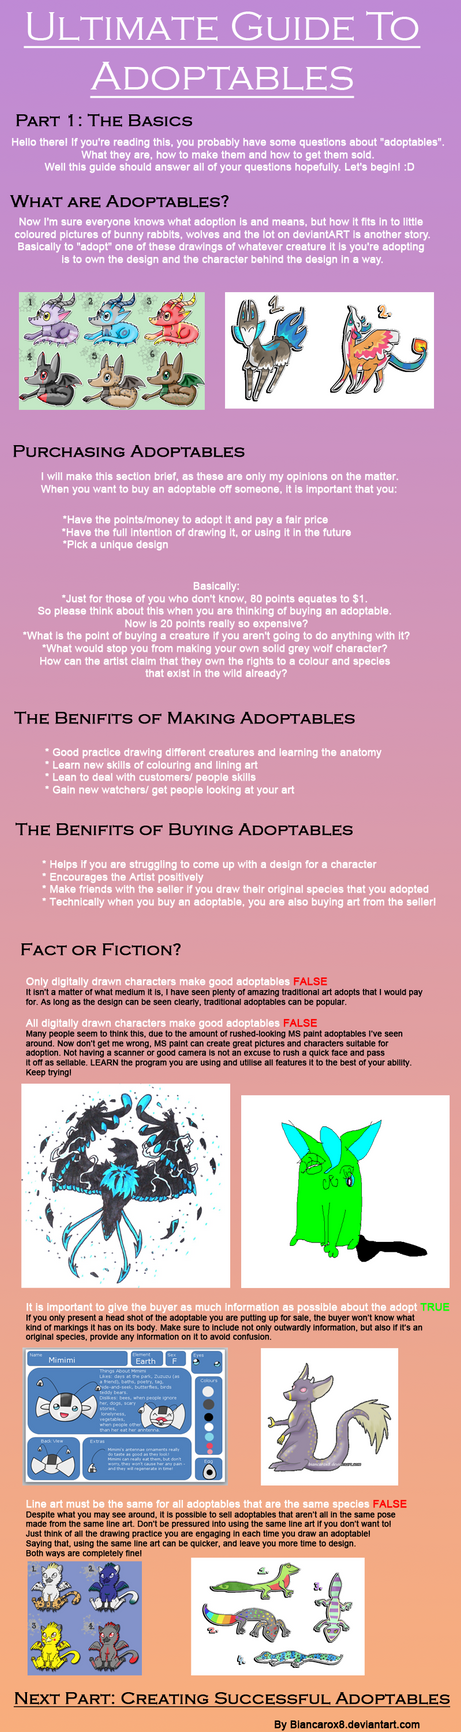 Ultimate Guide to Adoptables 1 by Torotix